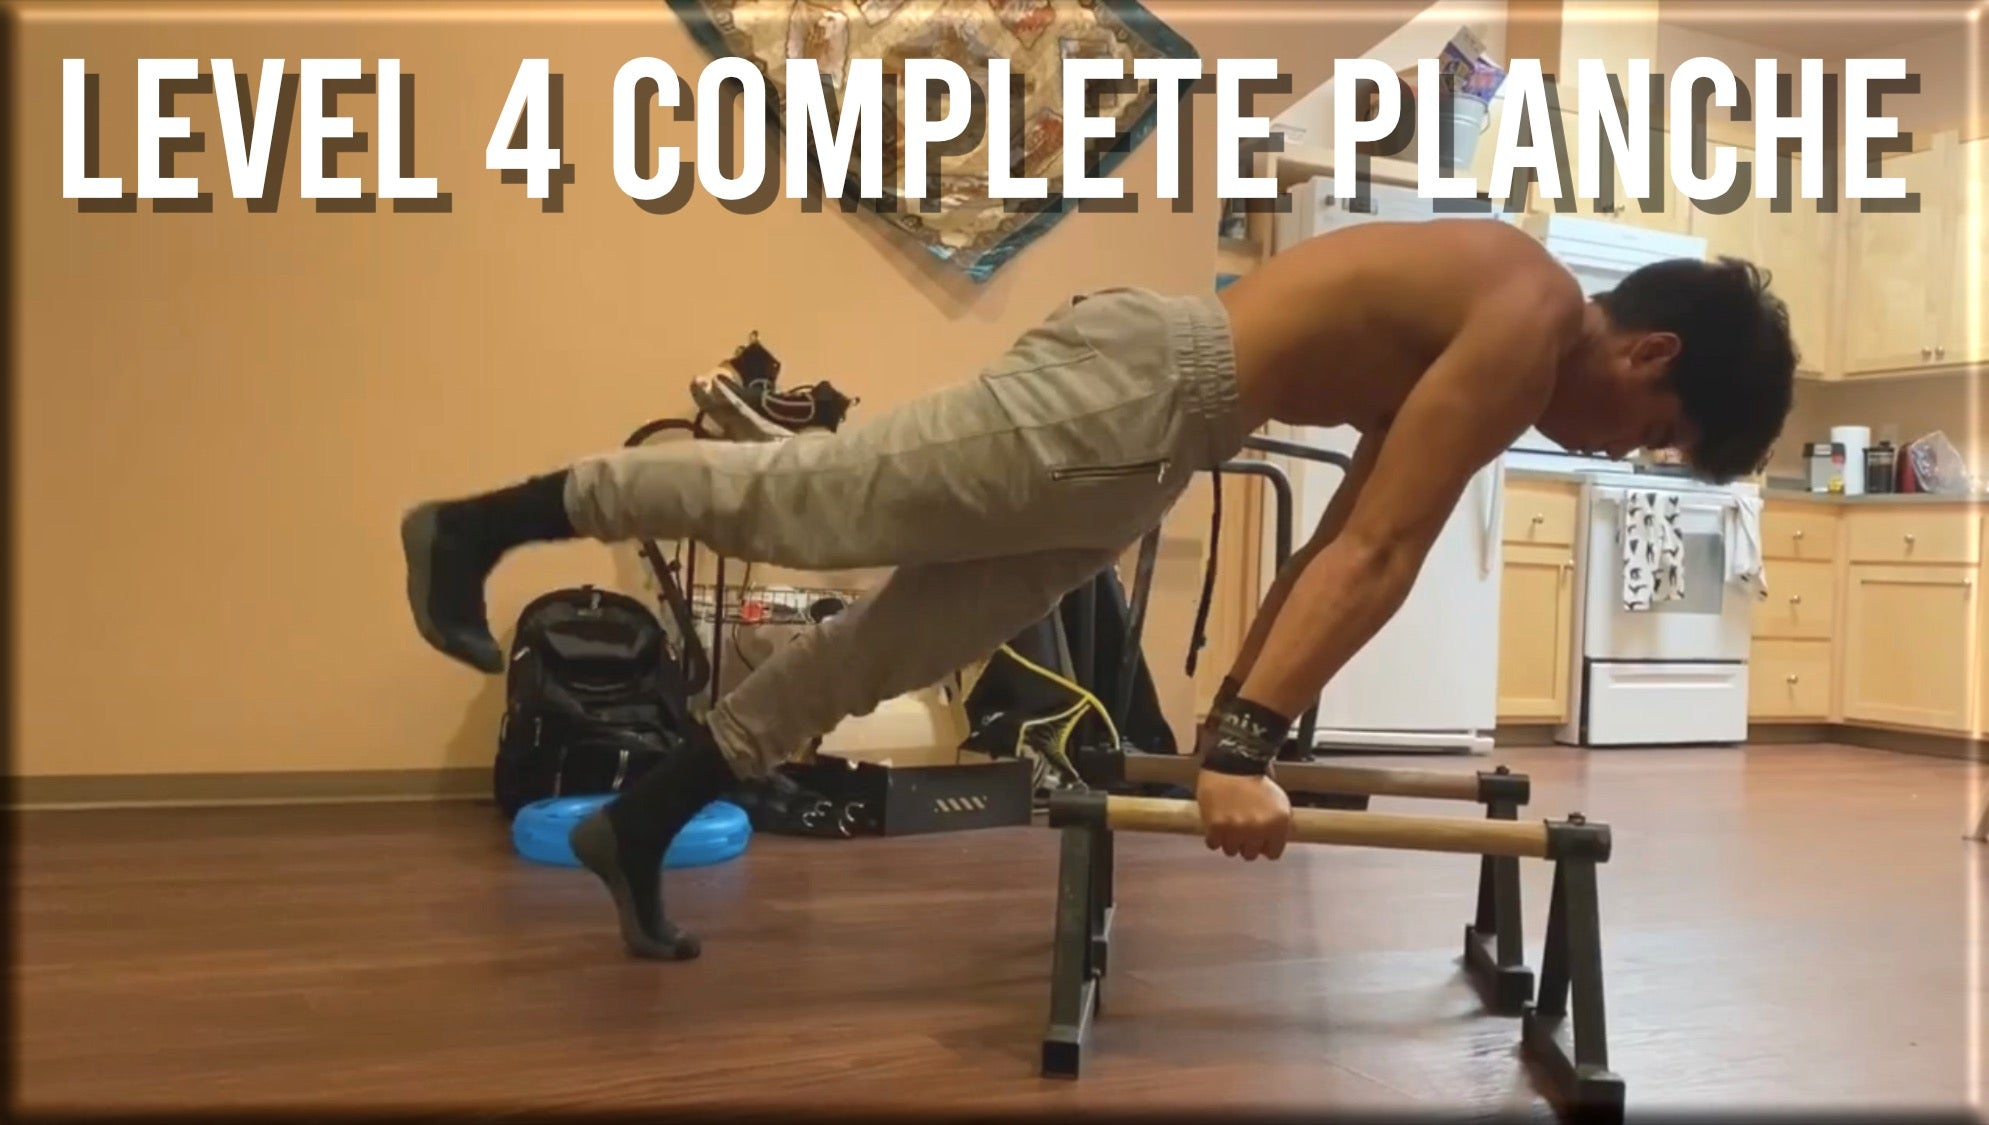 Level 4 Complete Planche